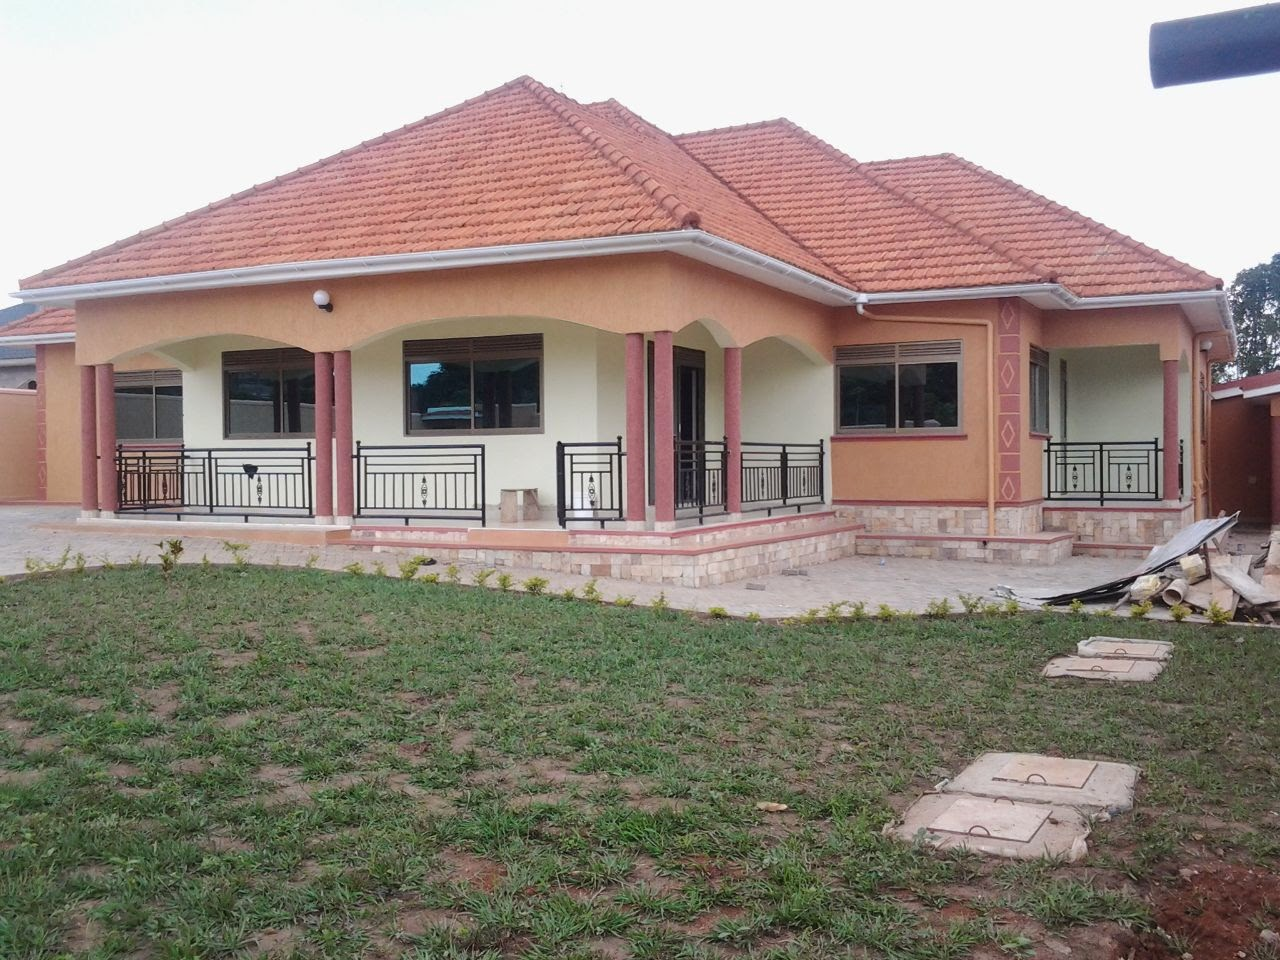 Houses for sale kampala uganda september 2014 for Houses for sale with floor plans